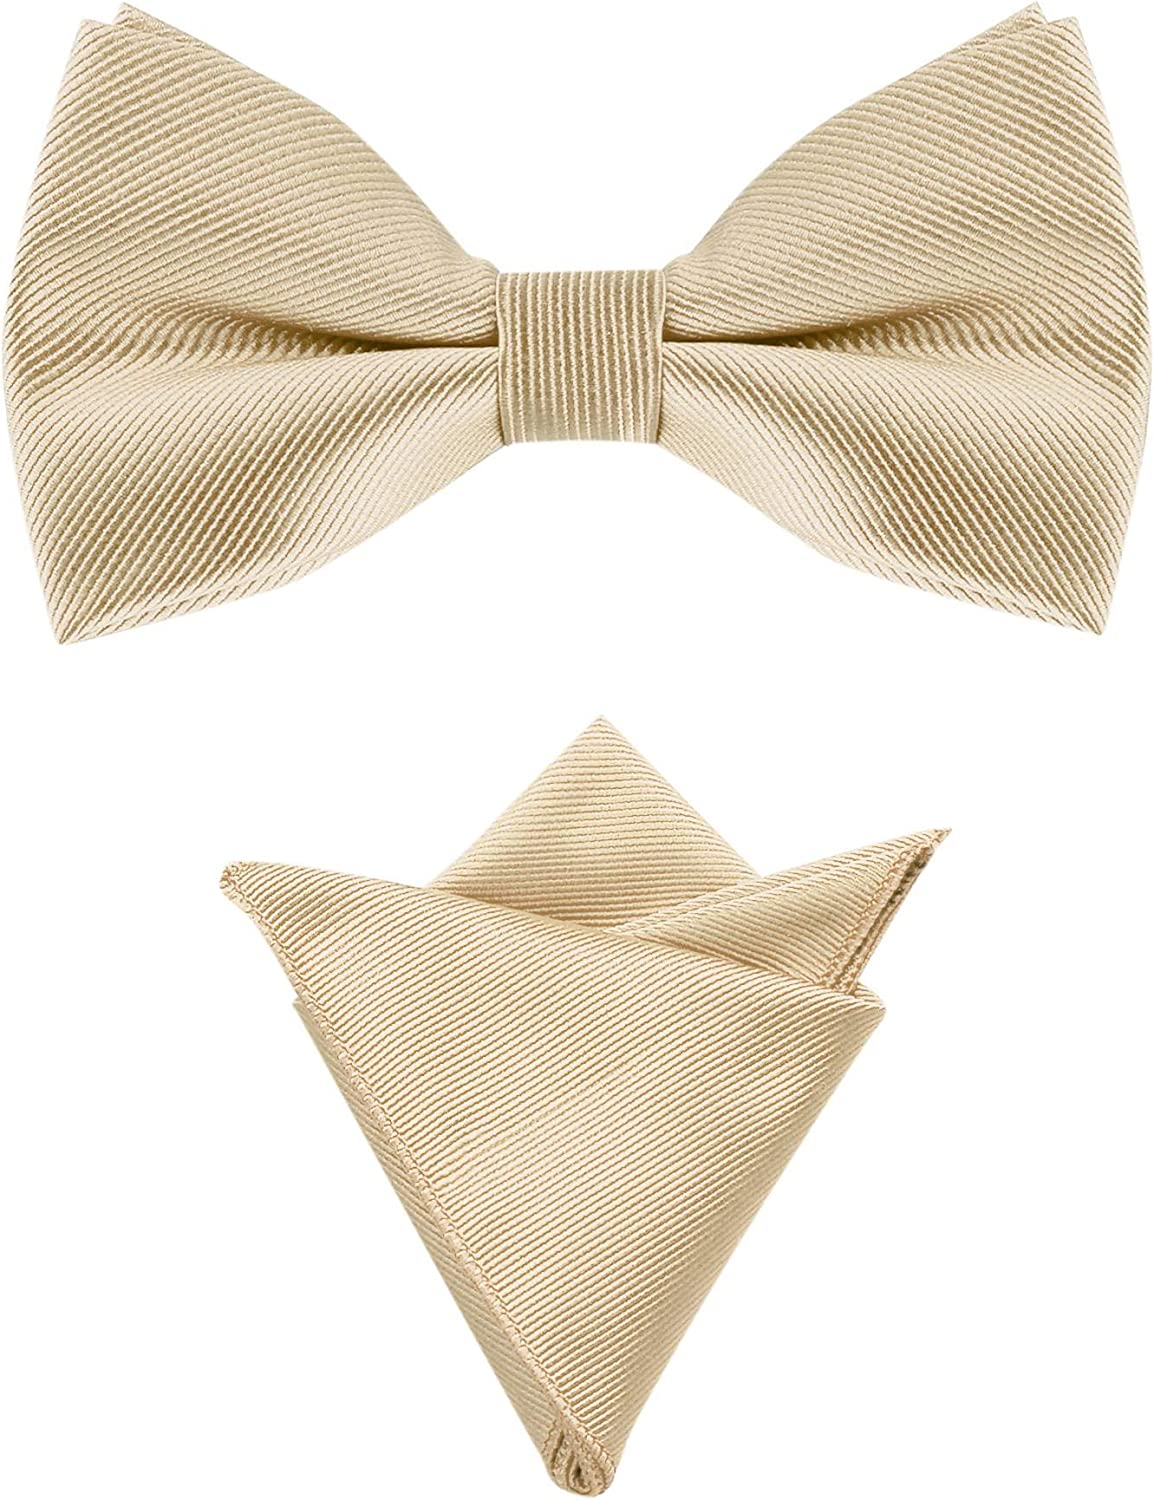 Allegra K Men's Solid Color Pre-Tied Bow Tie with Matching Pocket Square Set for Wedding Party